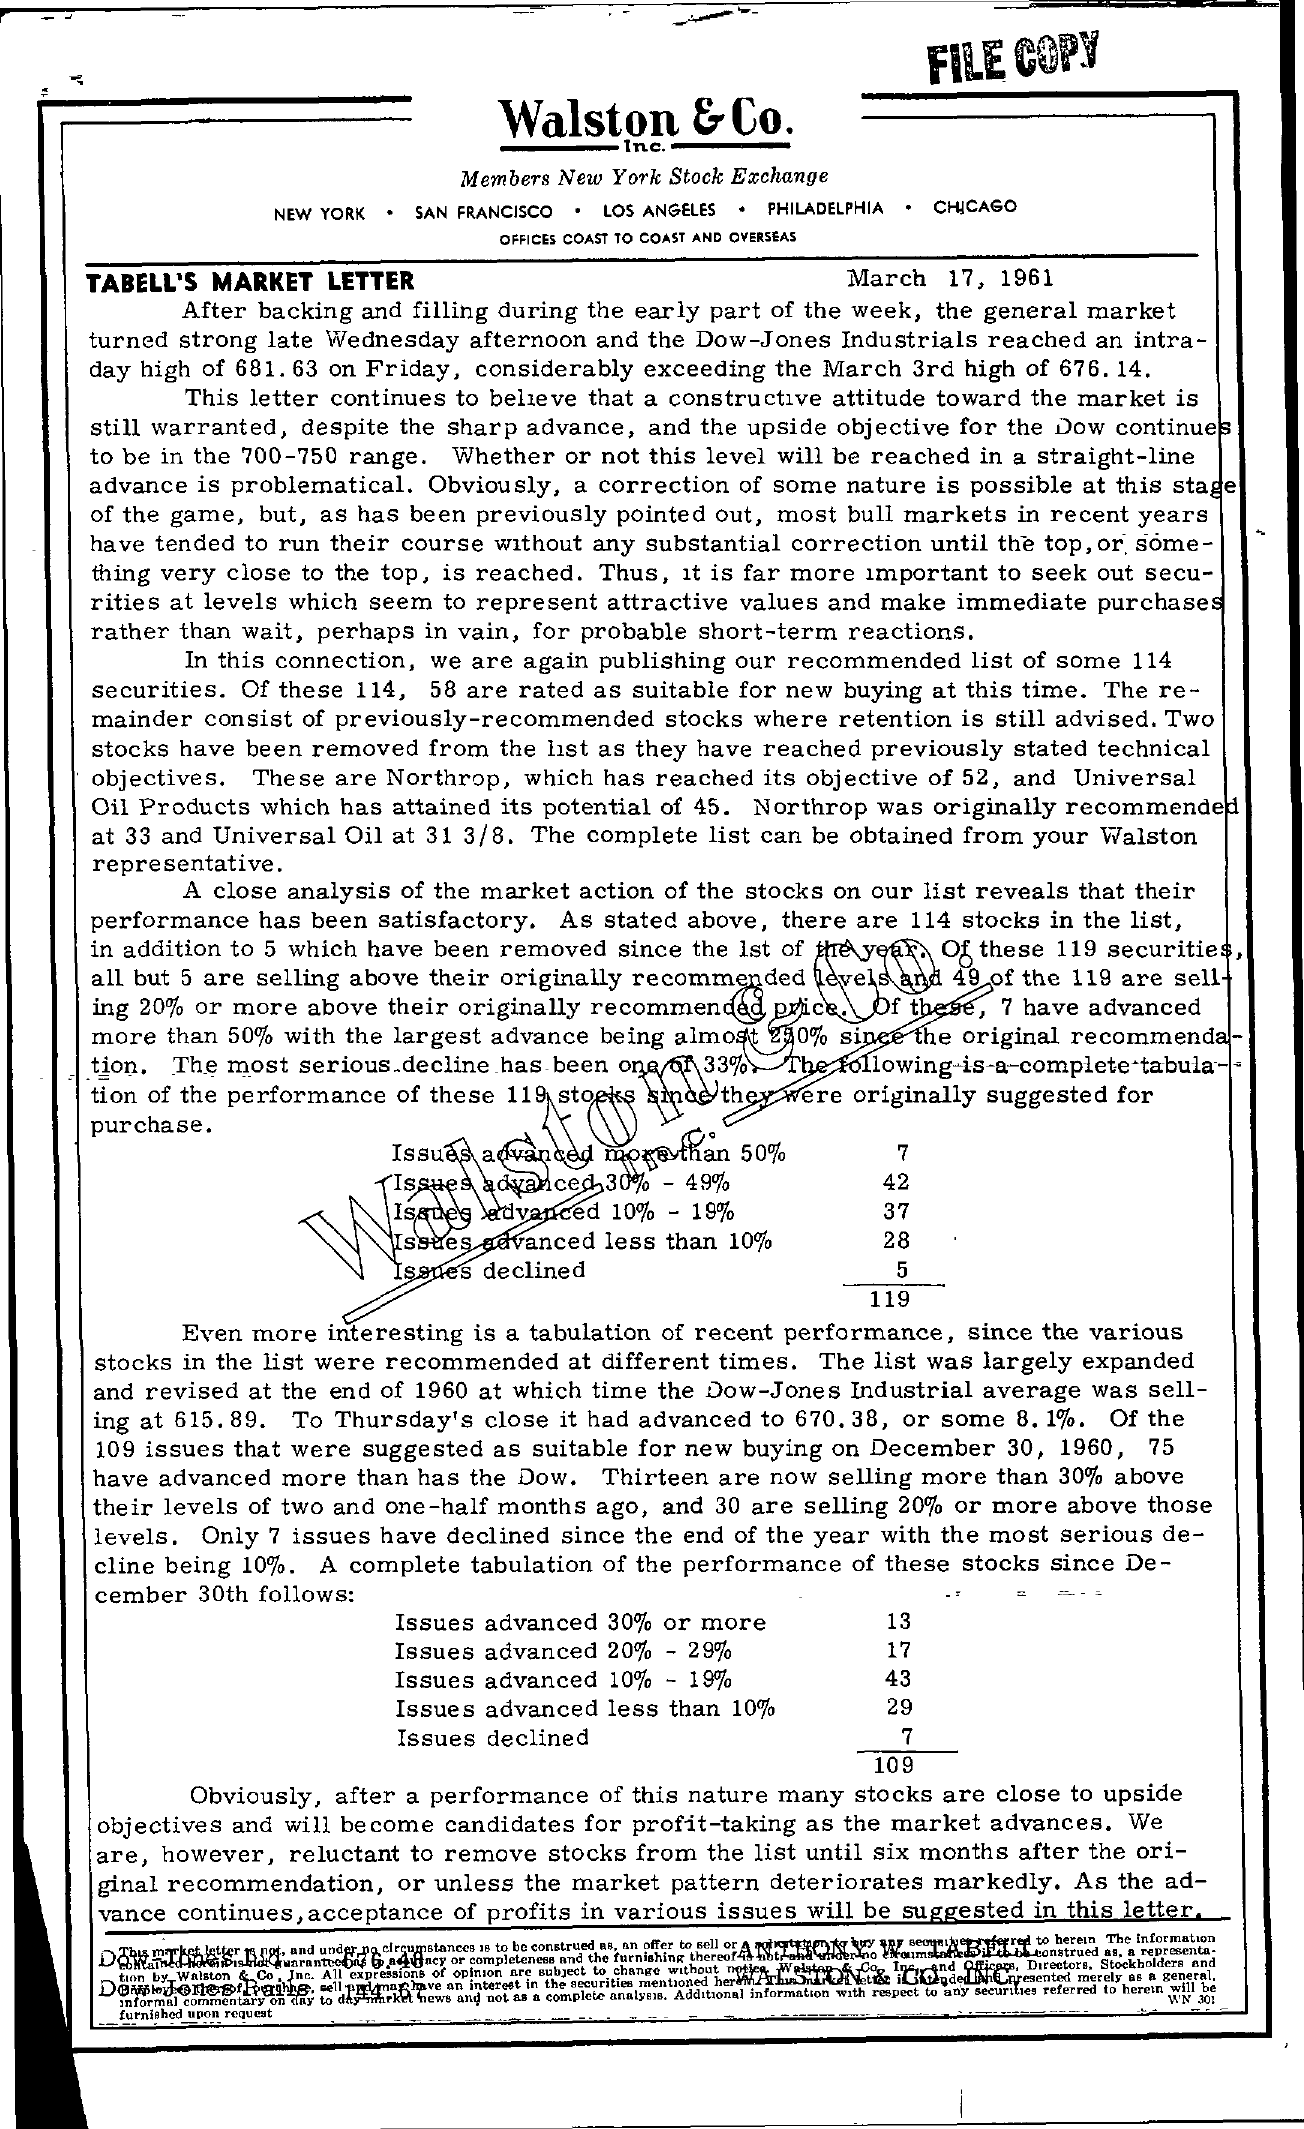 Tabell's Market Letter - March 17, 1961 page 1